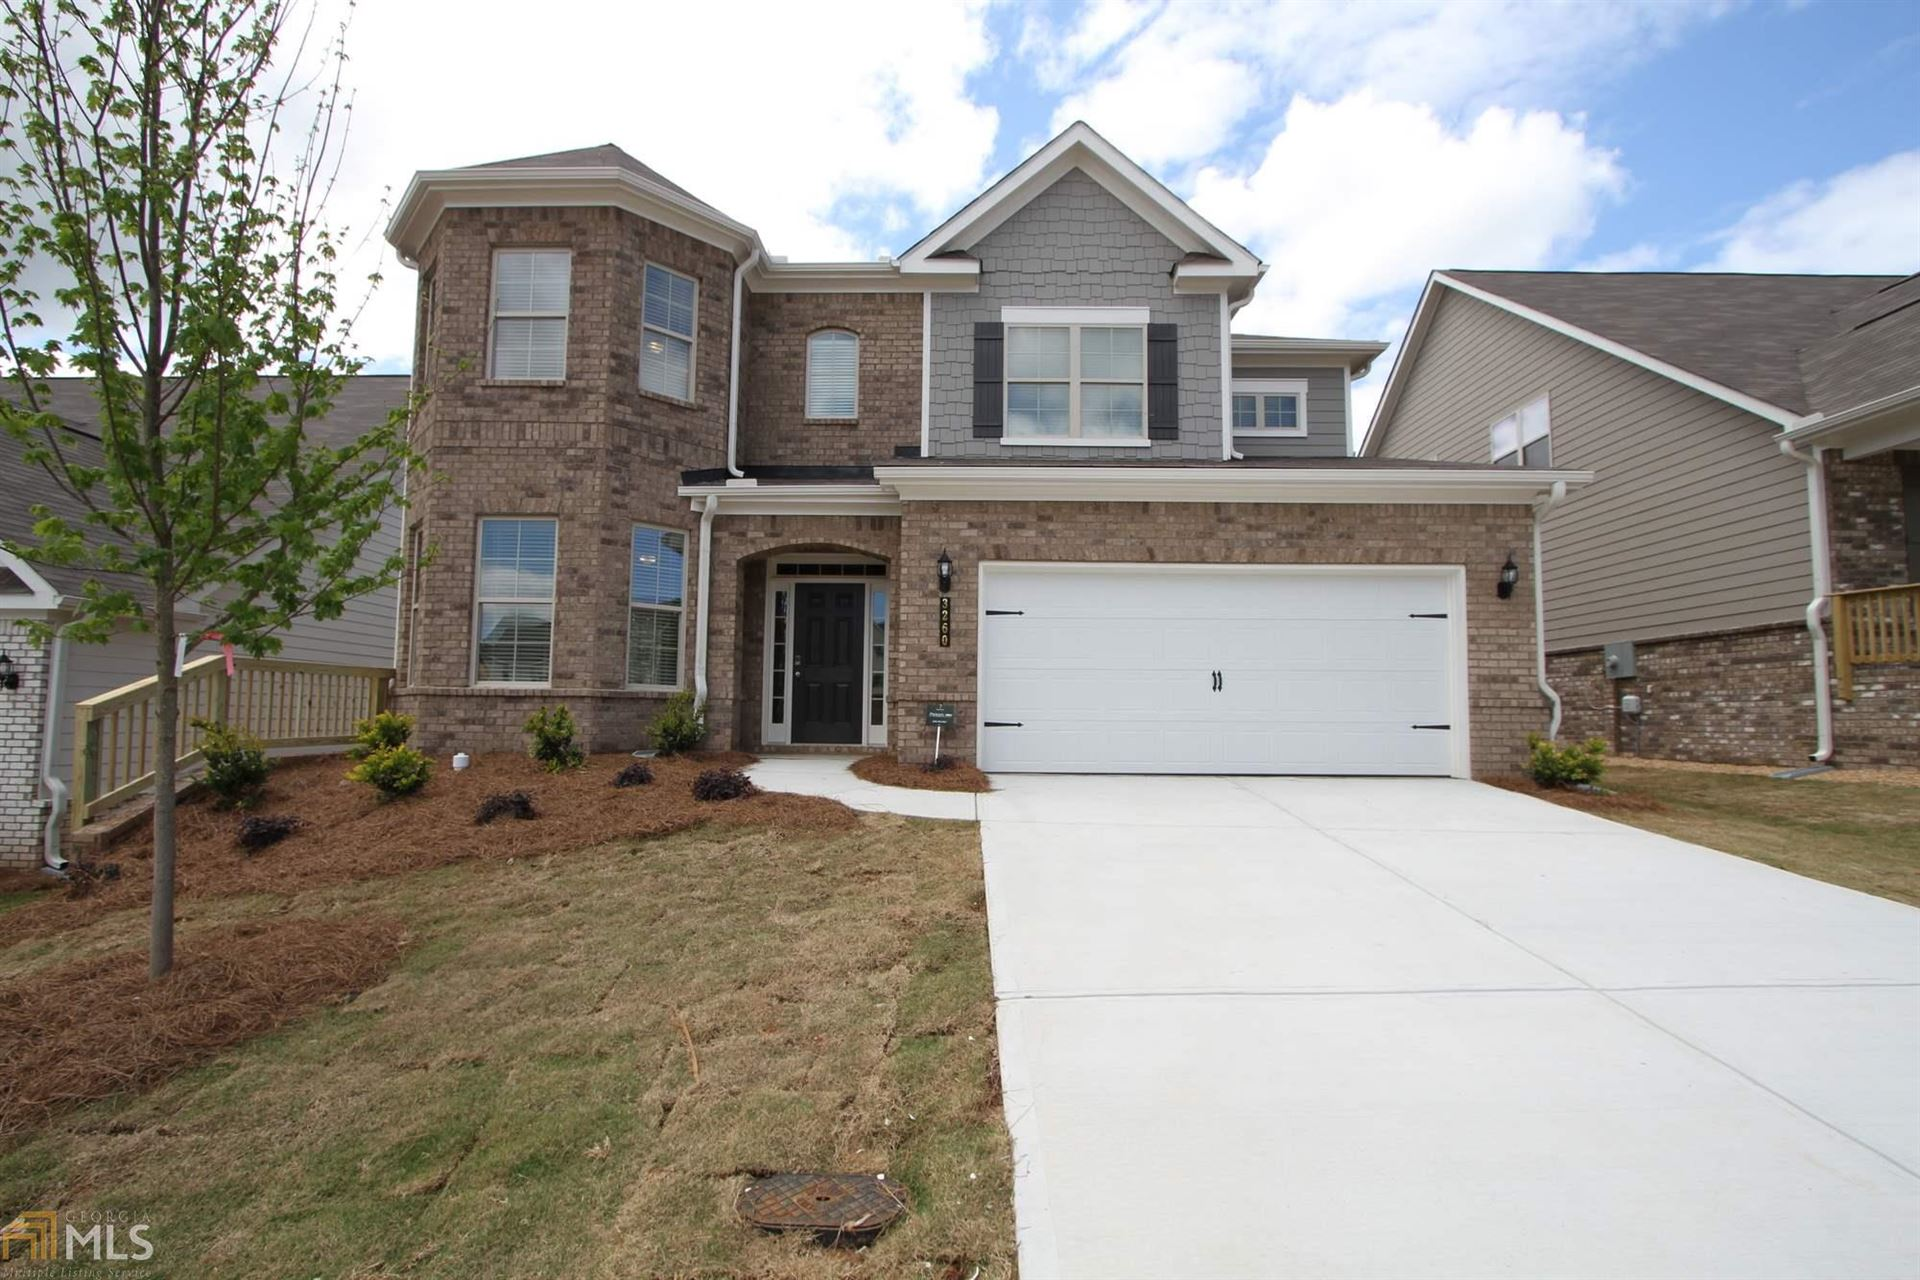 3260 Over Hill Ct, Buford, GA 30519 - #: 8699708